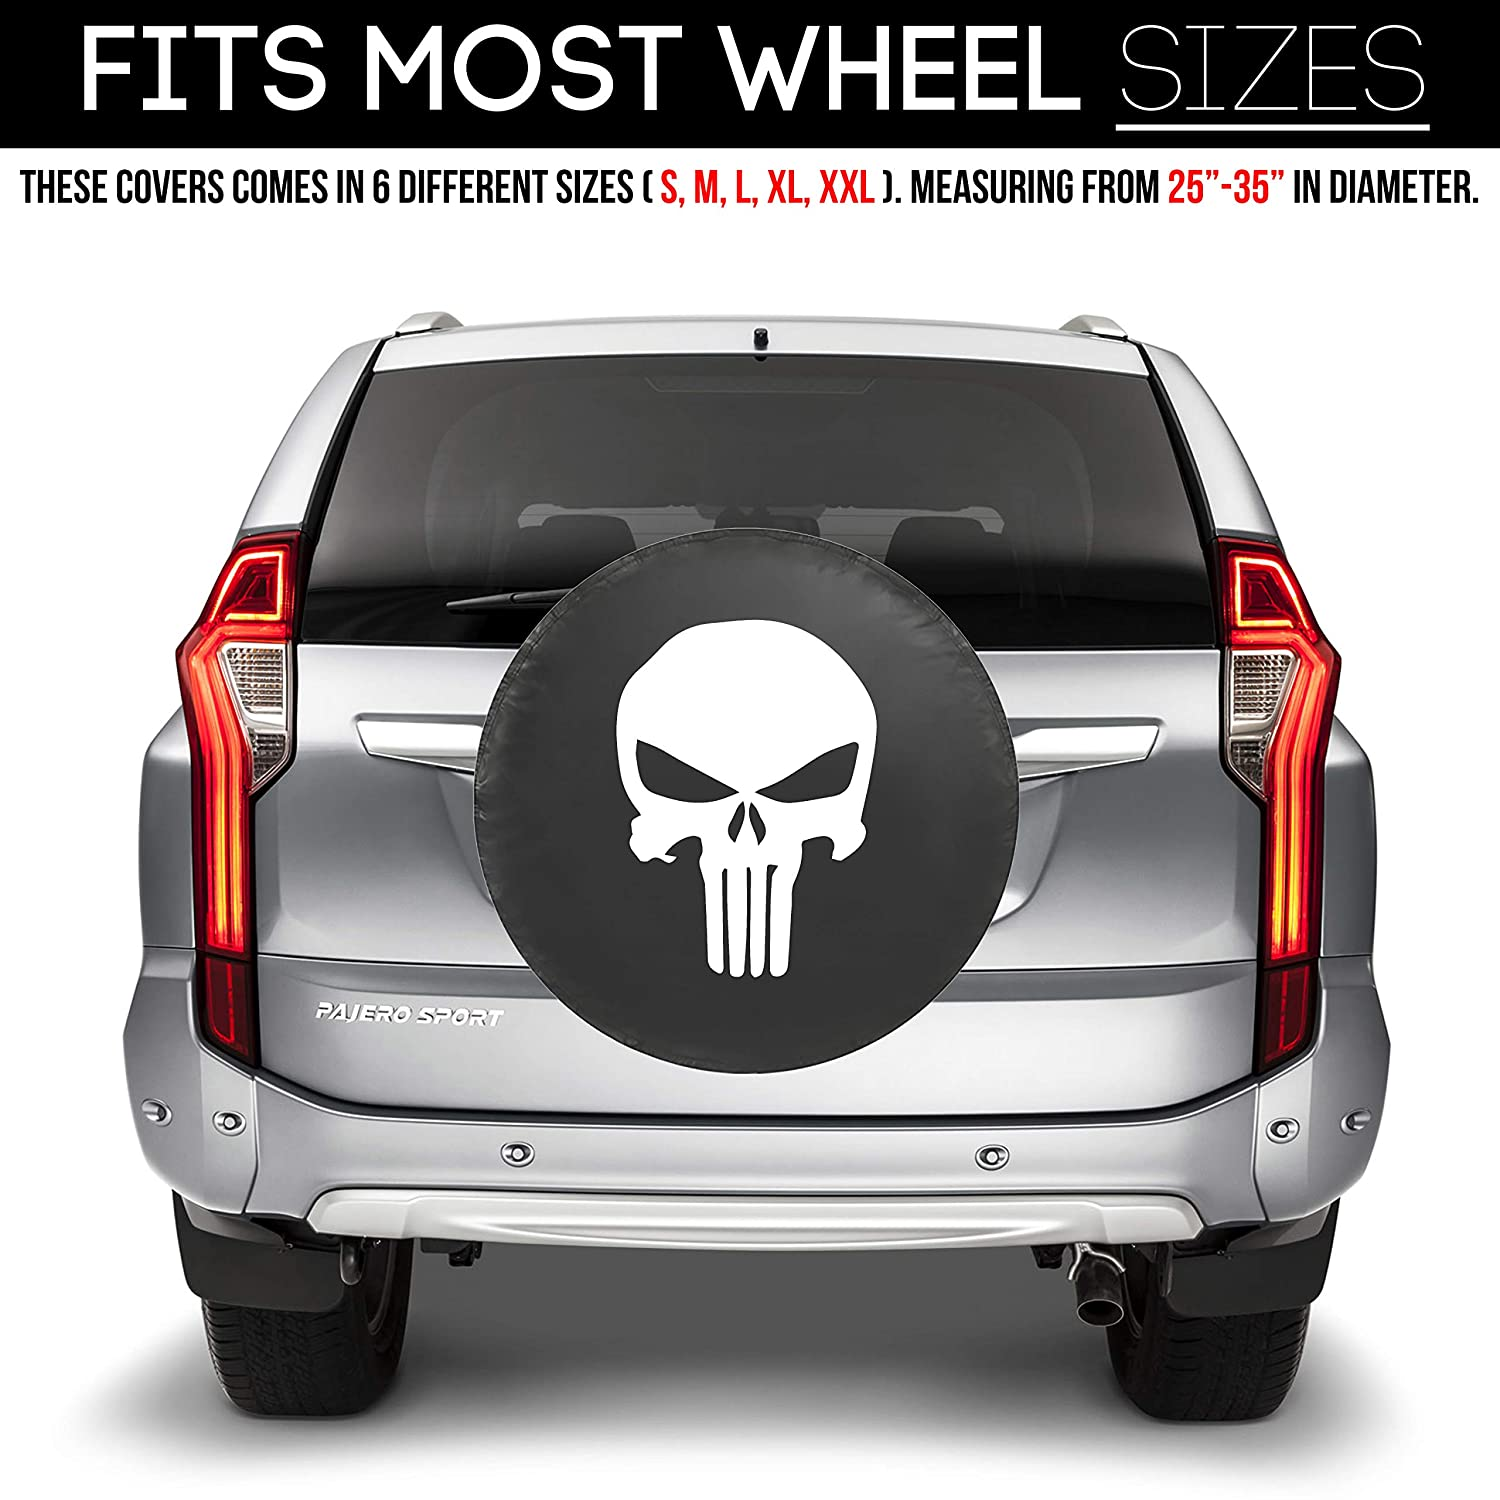 RV XXL Fit Most Wheel Sizes by Kankesh , Black Truck 18 INCH Must-Have Car Accessories for Your SUV Trailer Kenkesh 4350437939 Spare Tire Cover Jeep